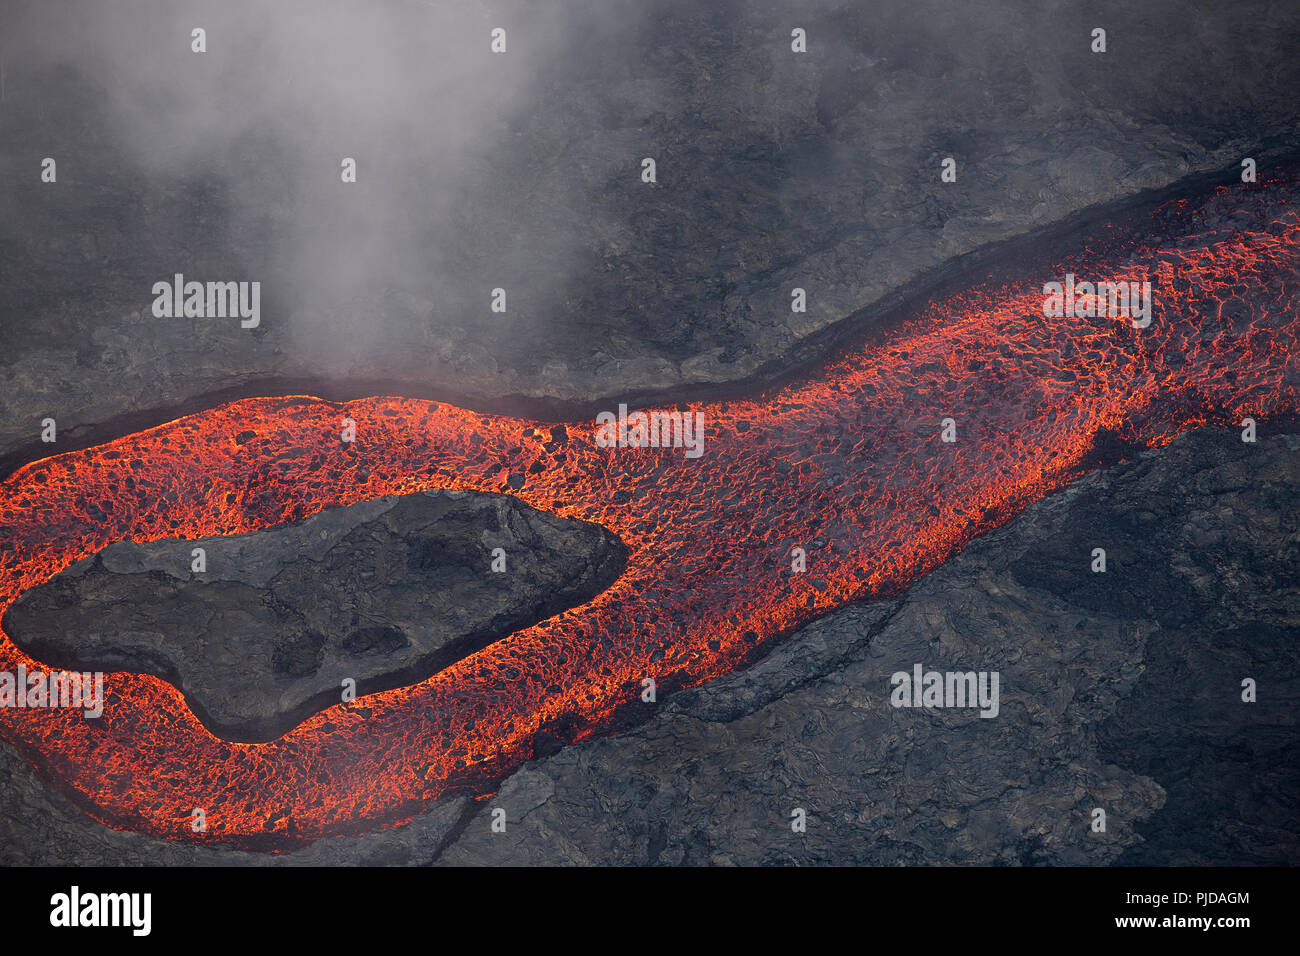 Aerial view of lava river erupted from fissure 8 of Kilauea Volcano east rift zone near Pahoa, Puna, Hawaii Island - Stock Image